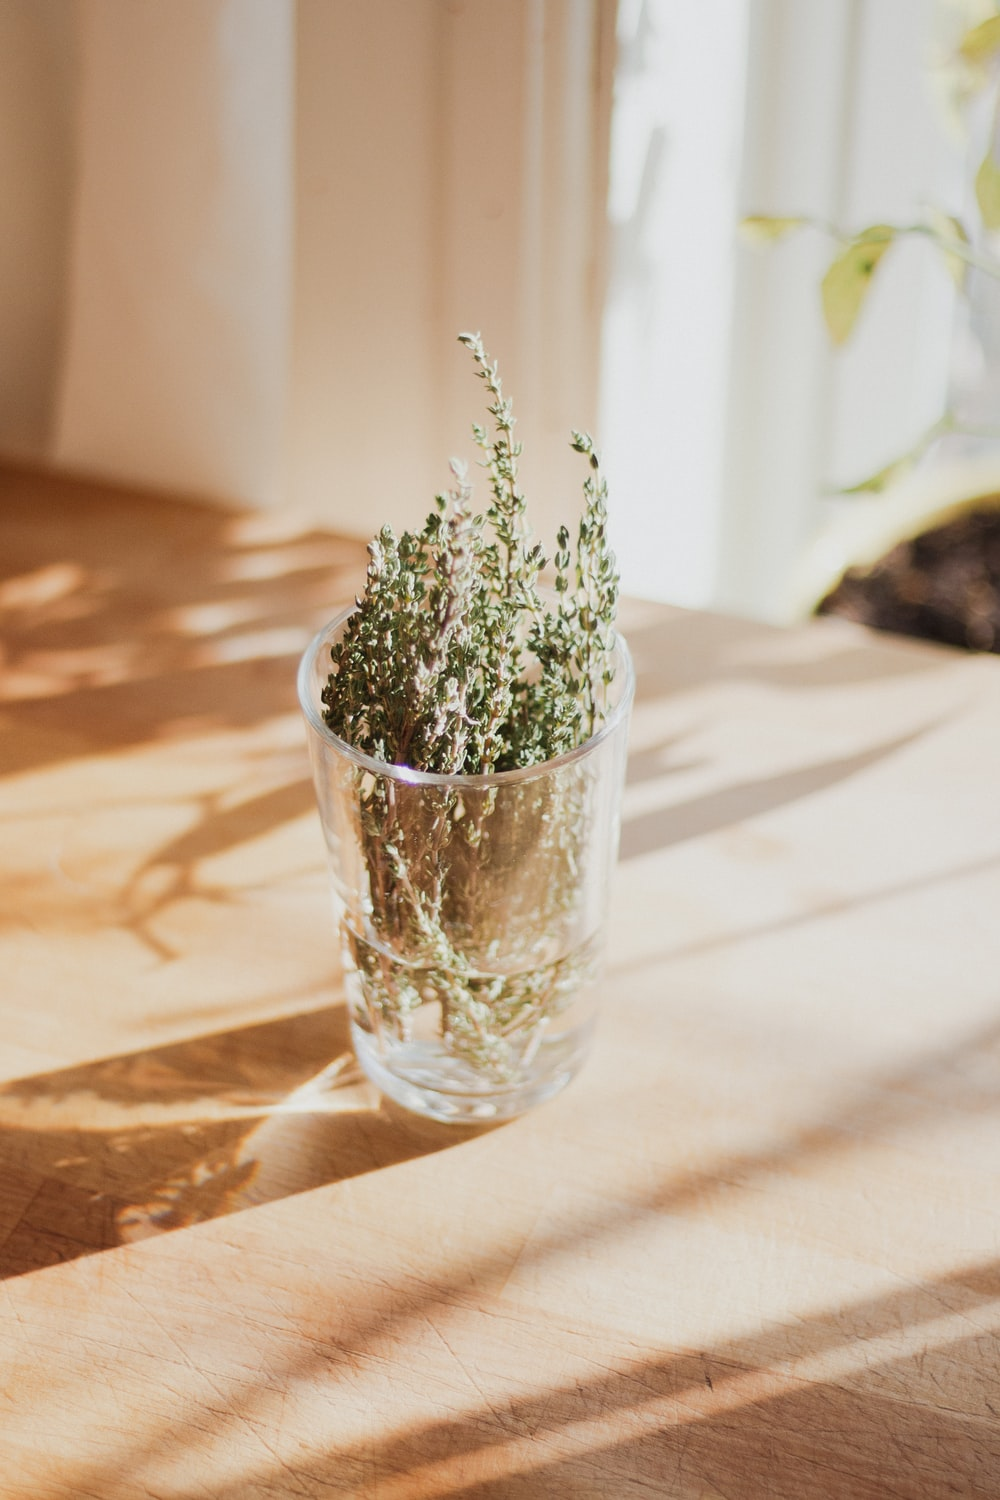 green plant in clear glass vase